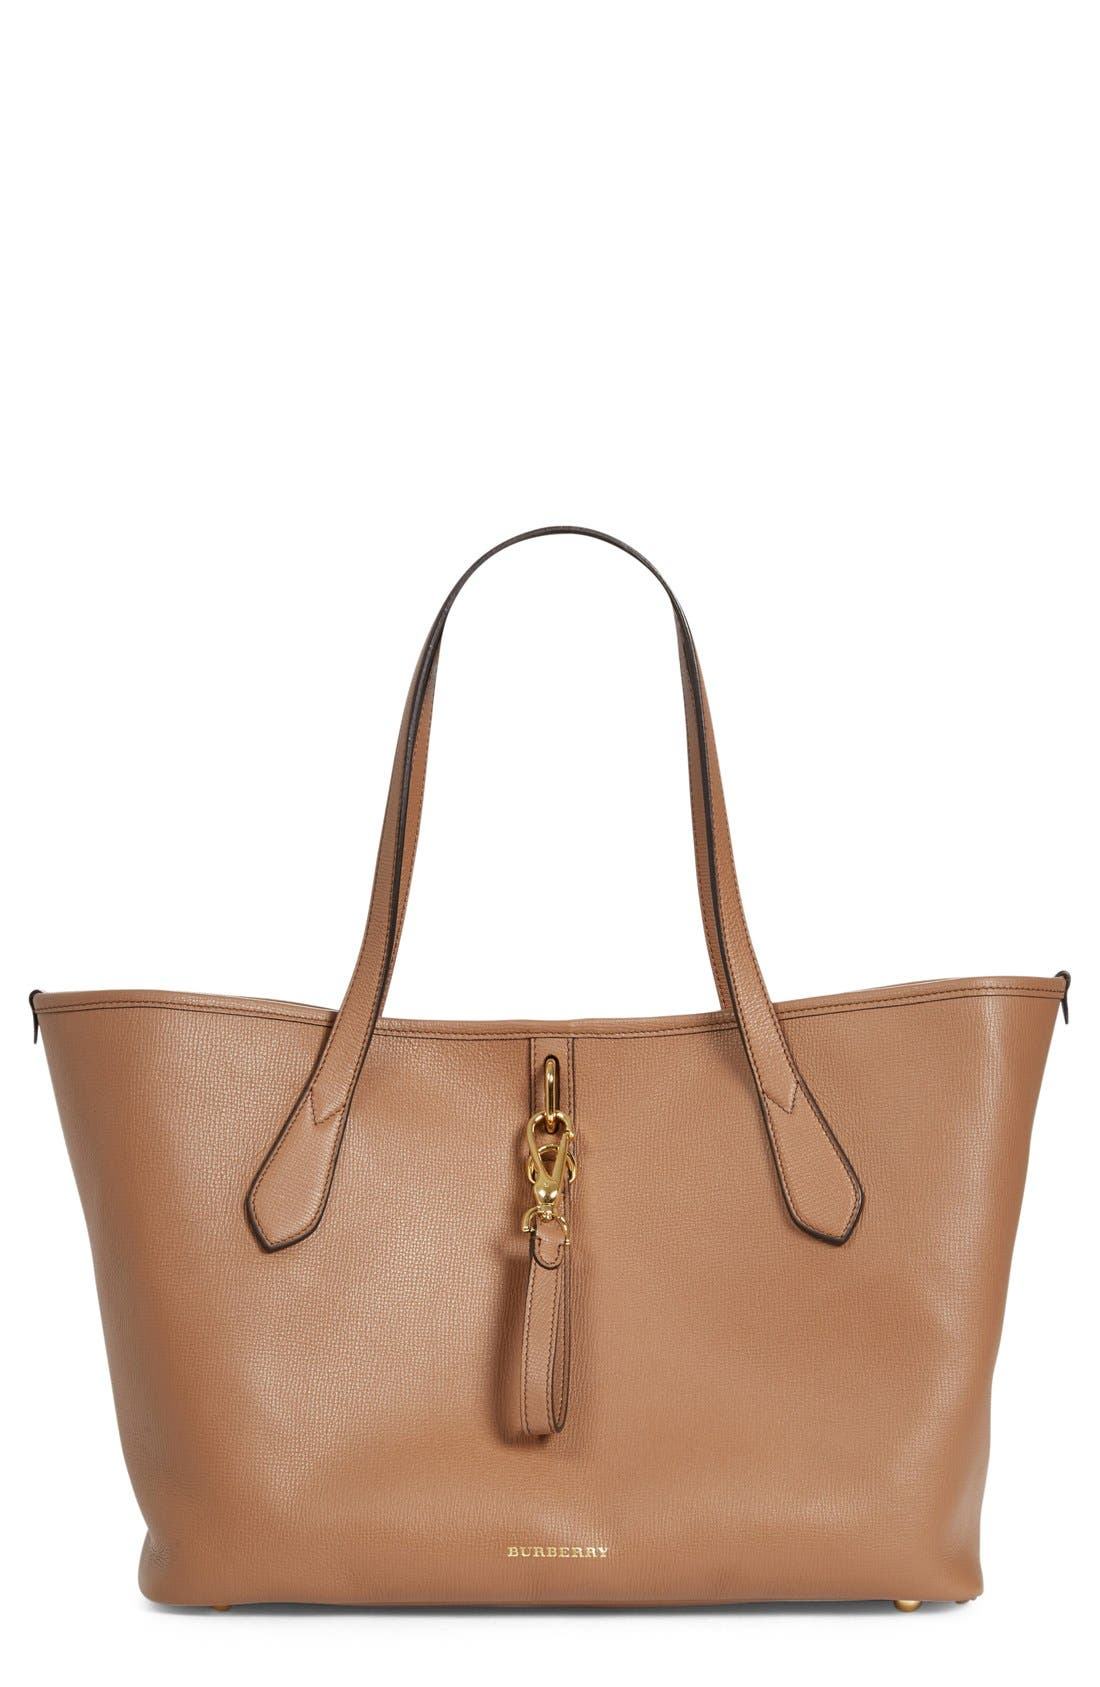 BURBERRY 'Medium Honeybrook' Leather Tote